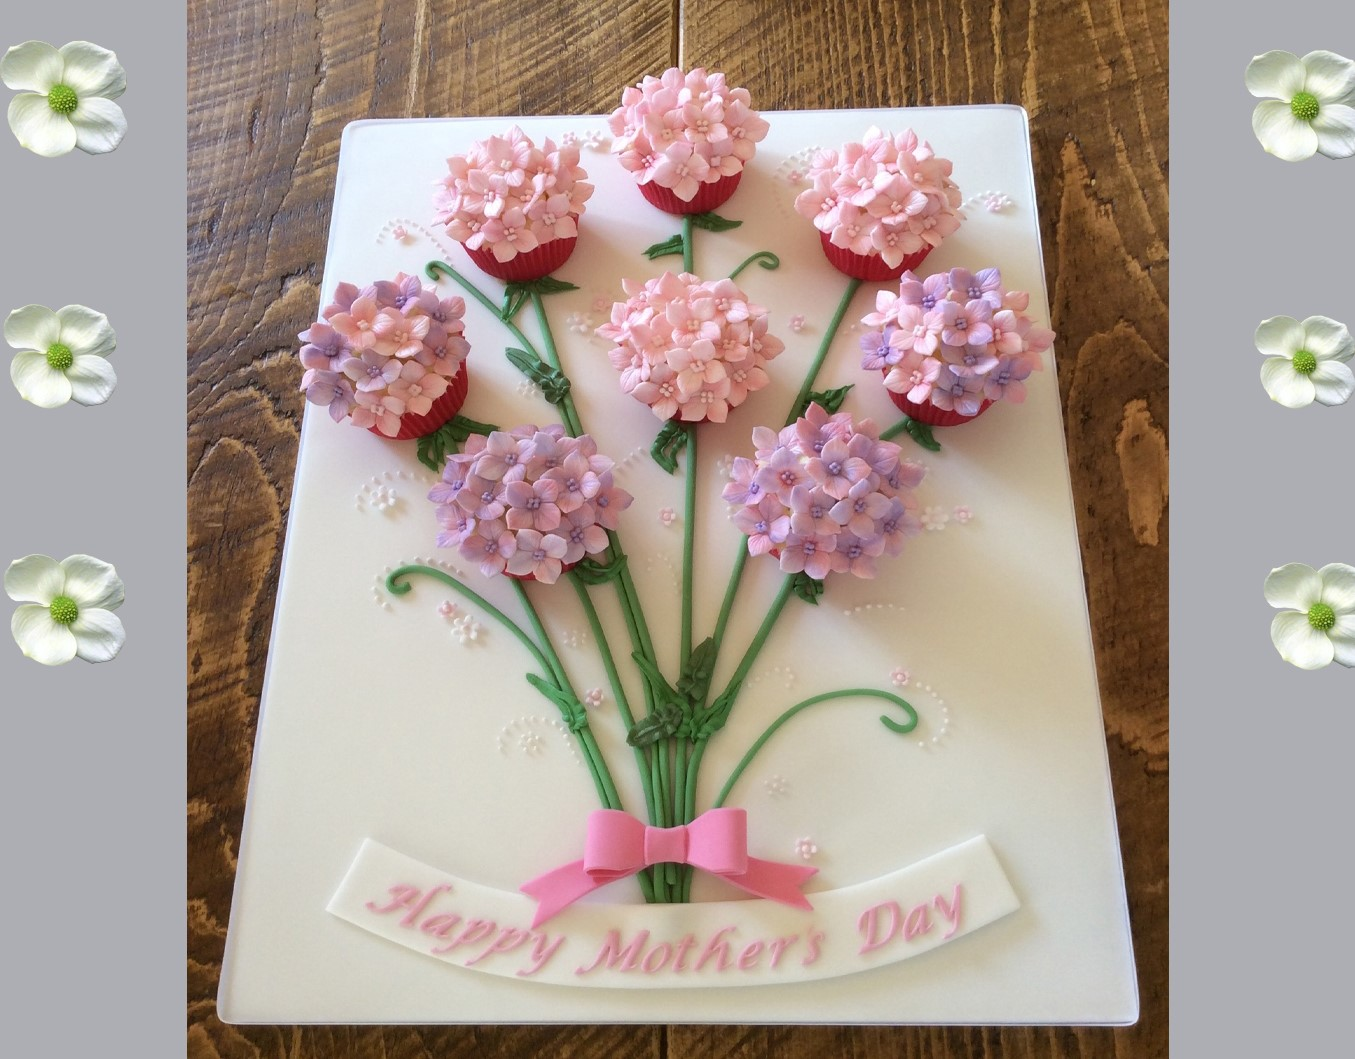 mothers day cupcake bouquet - a bouquet to look like flowers